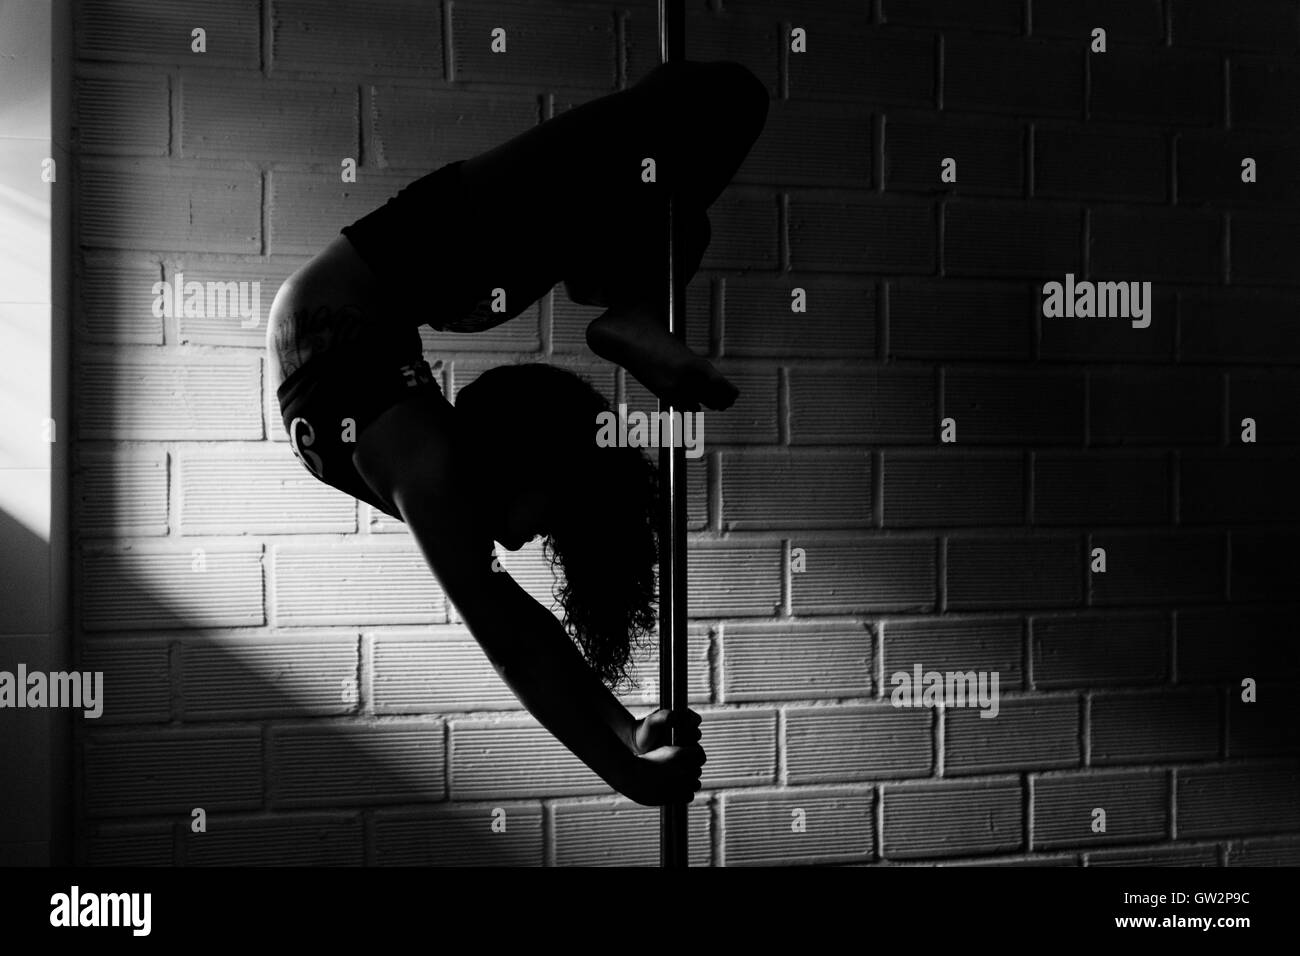 Carolina Echavarria, a young Colombian pole dancer, demontrates her flexibility during a pole dance training session - Stock Image